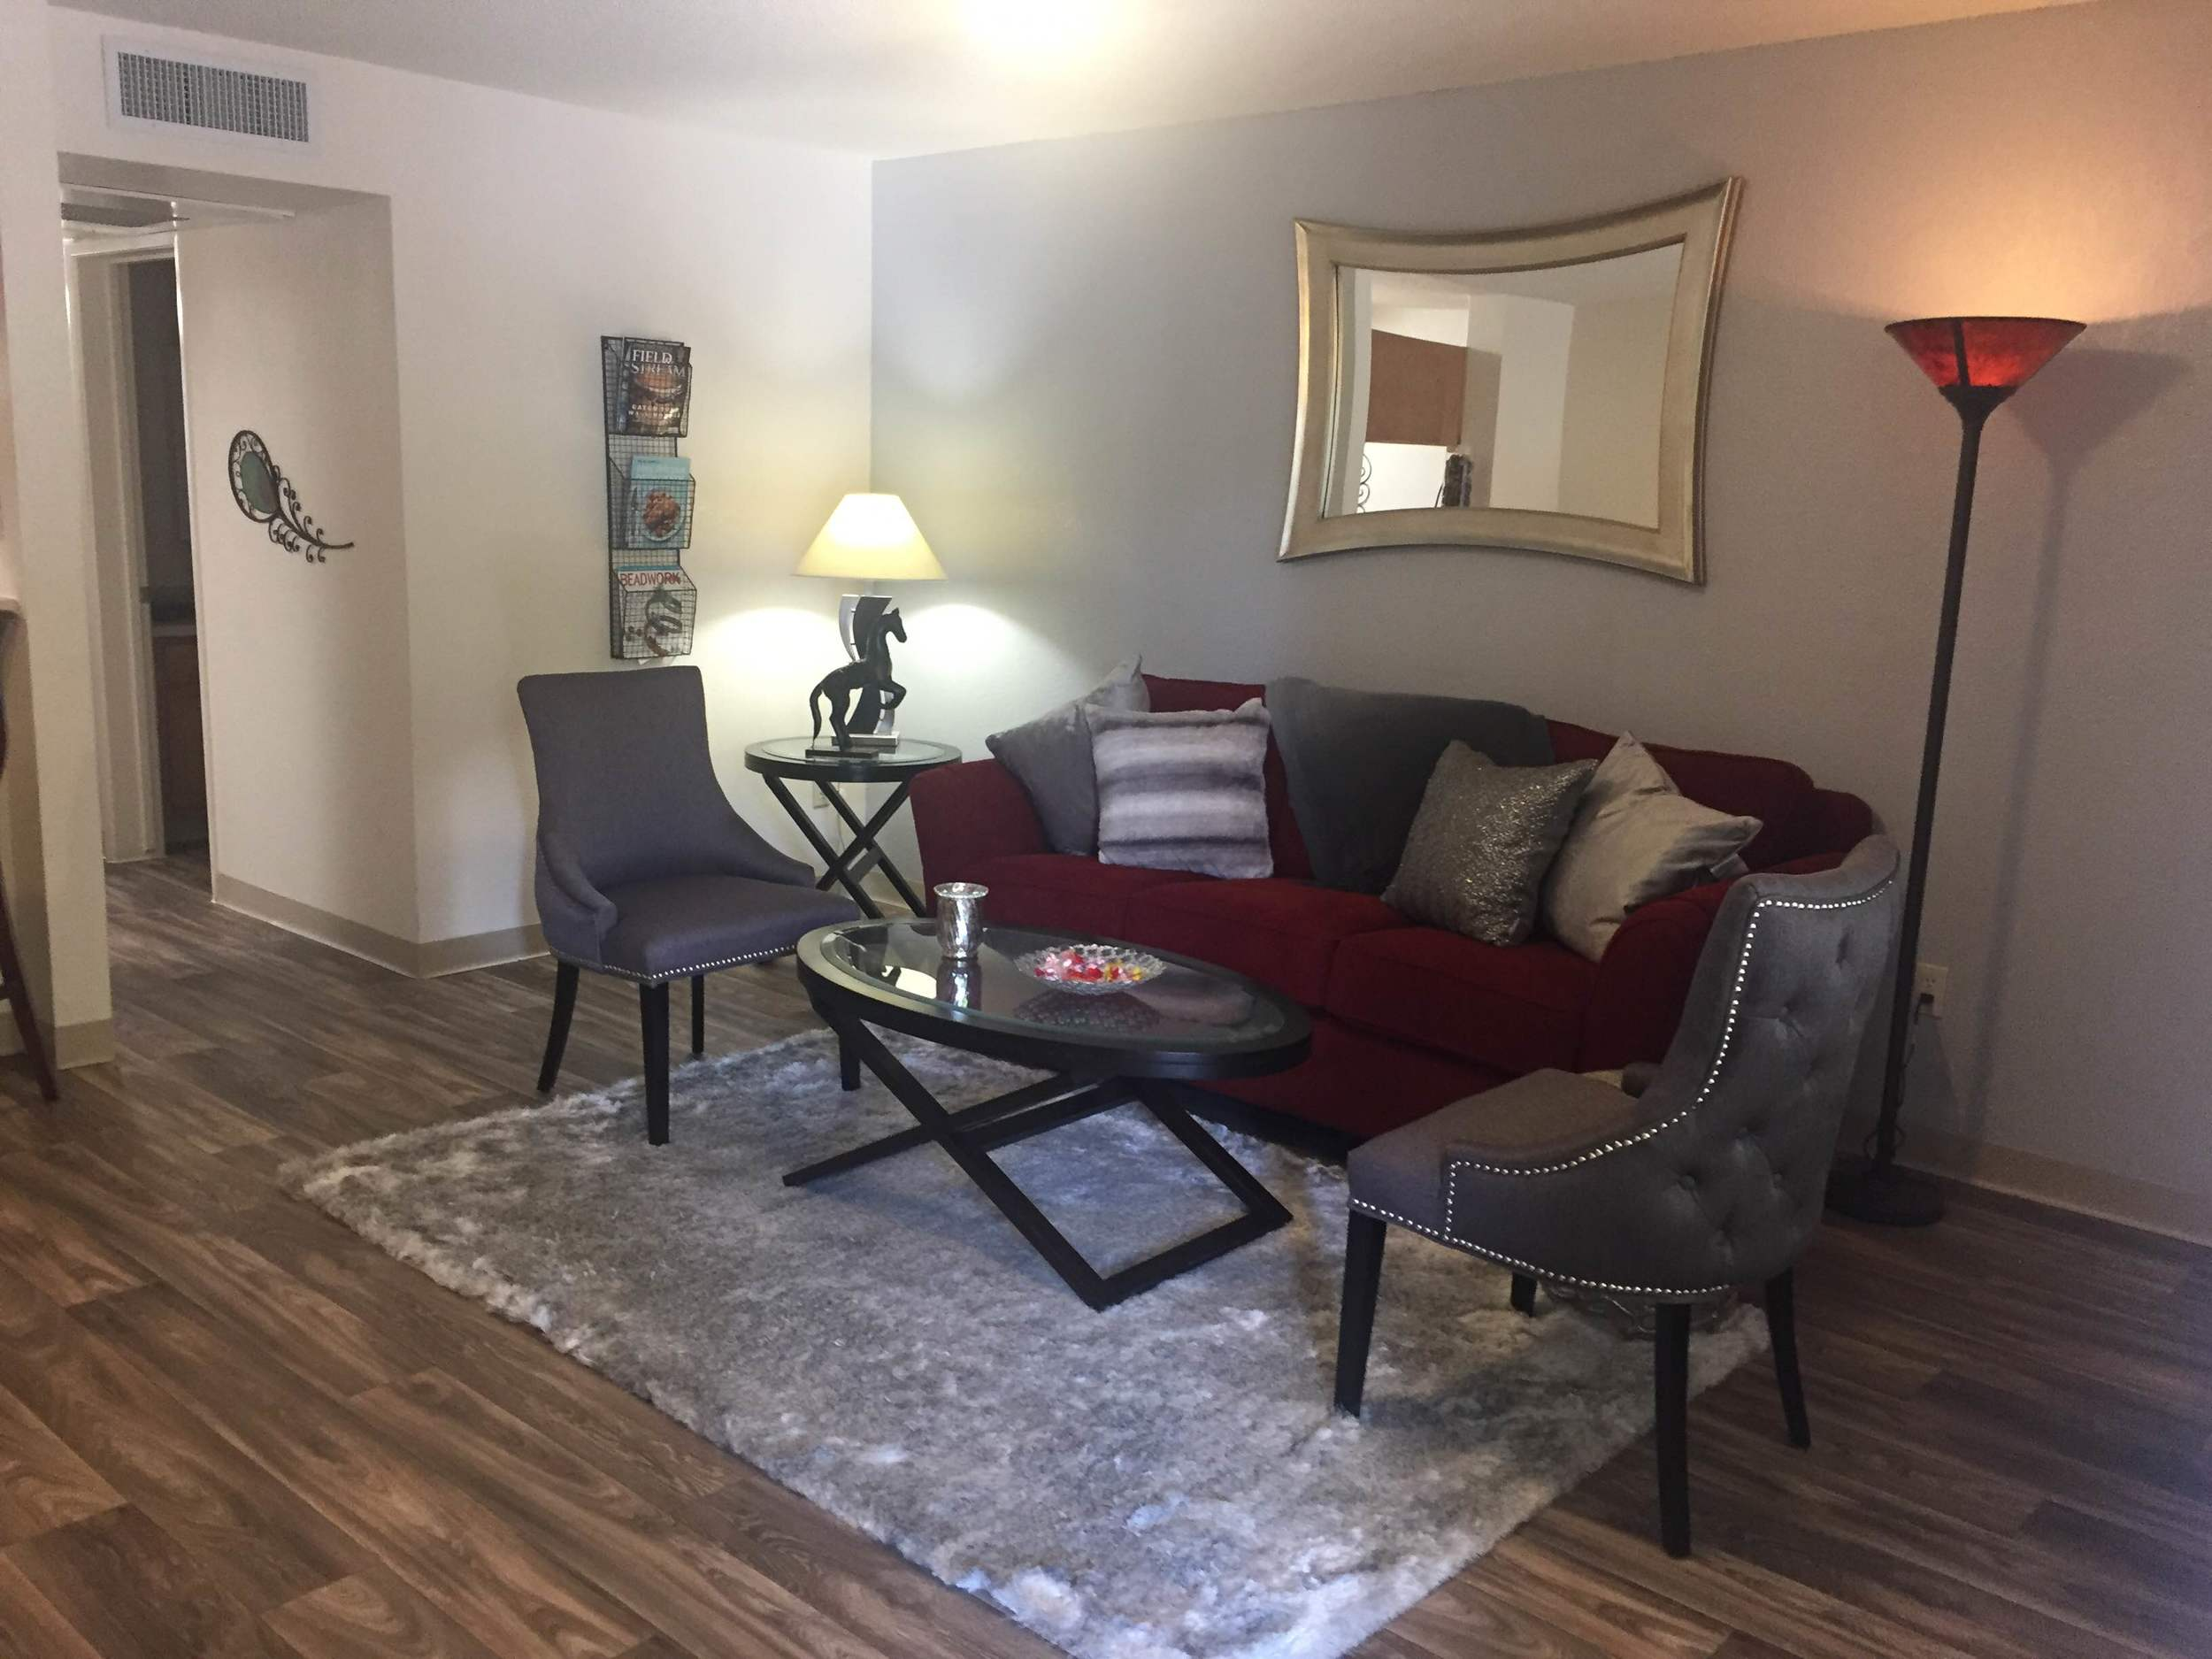 Make your living space your own at Pavilions at Pantano Apartment Homes; our spacious luxury apartments have plenty of room here in Tucson.